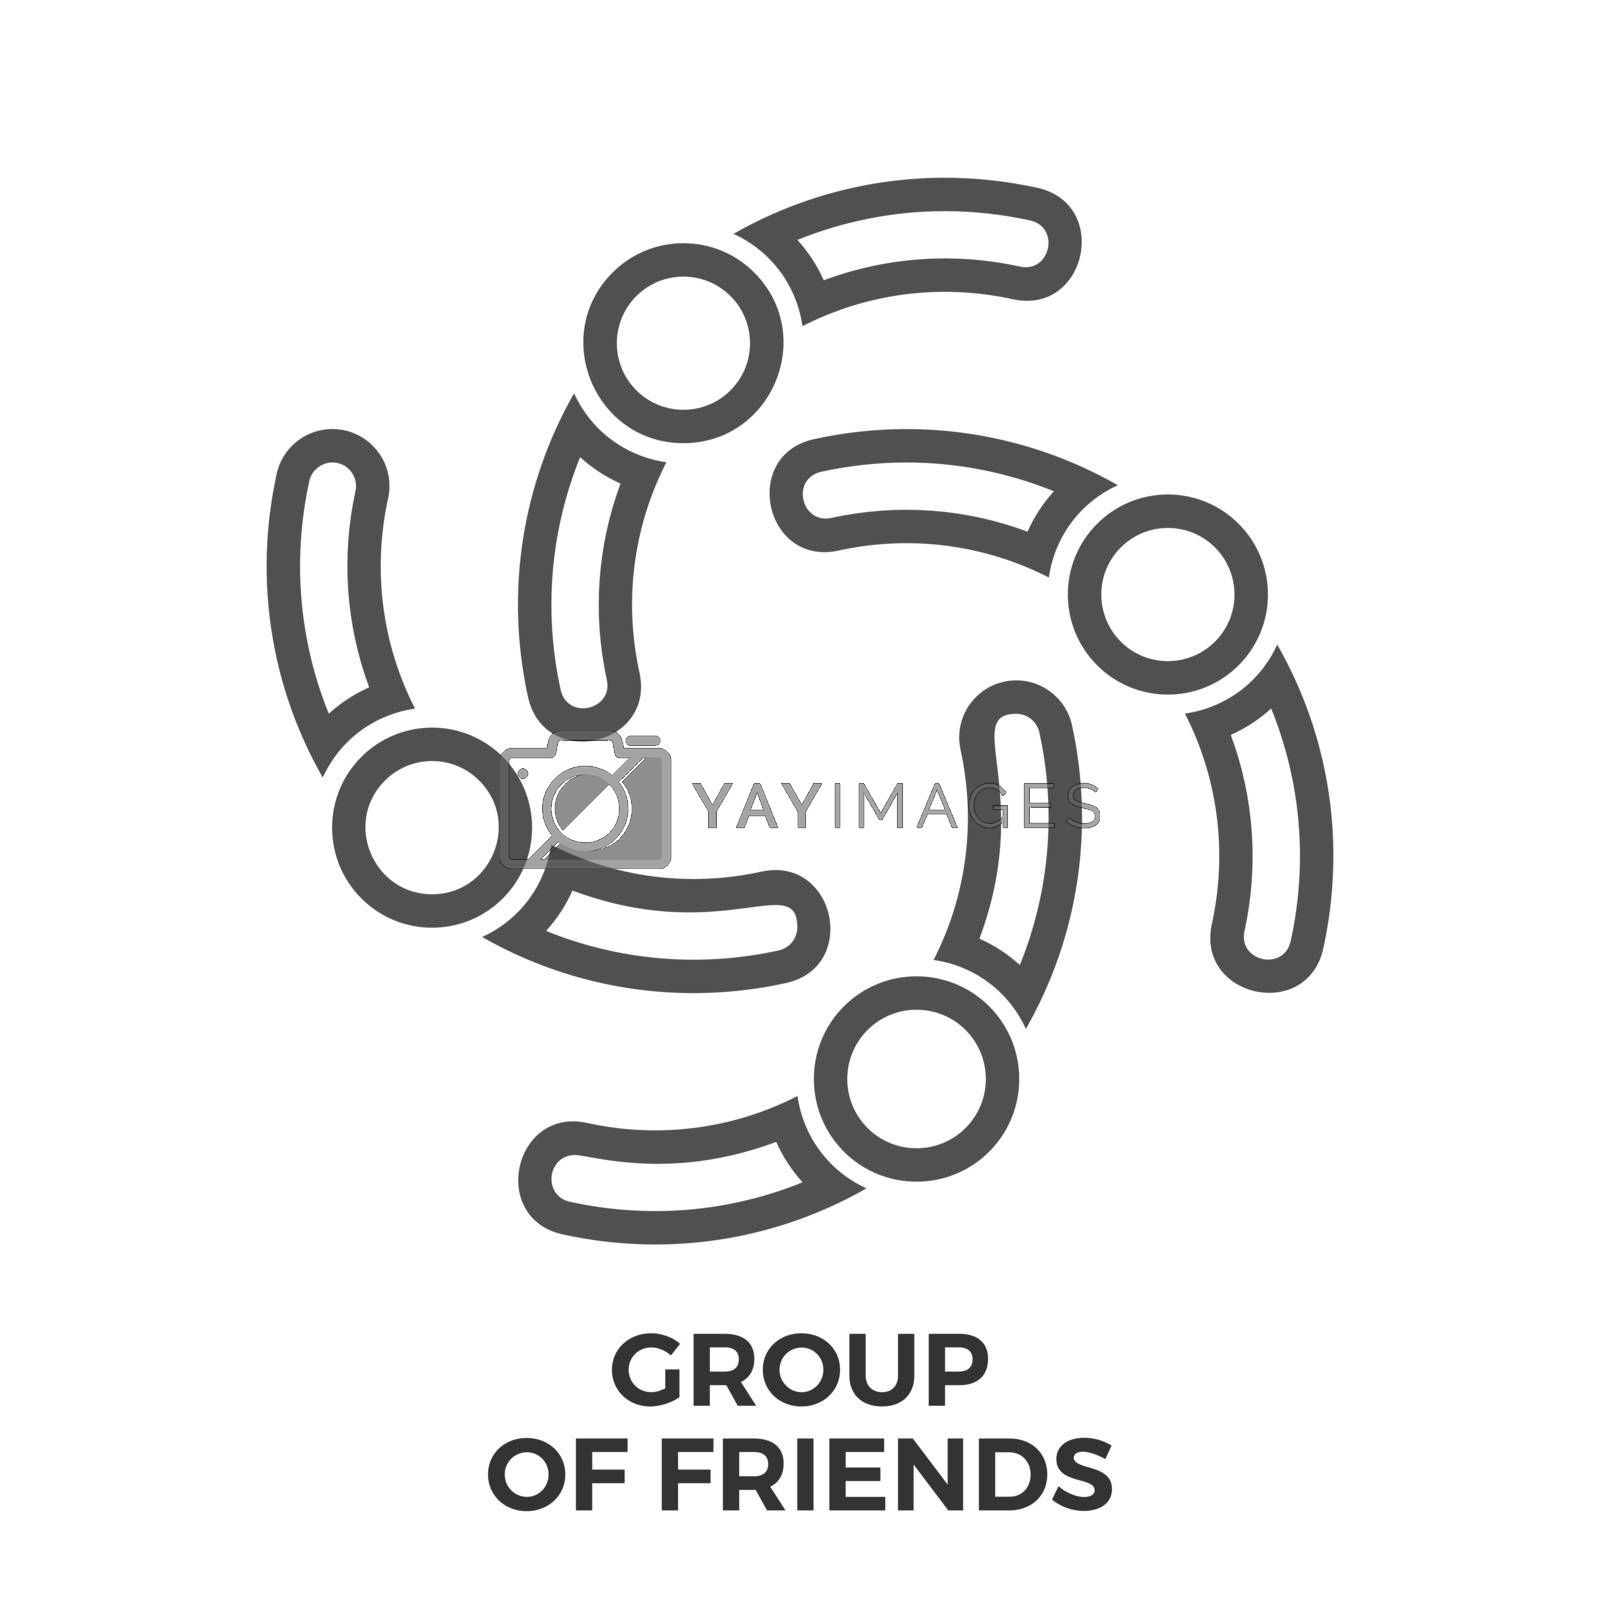 Group of Friends Thin Line Vector Icon Isolated on the White Background.